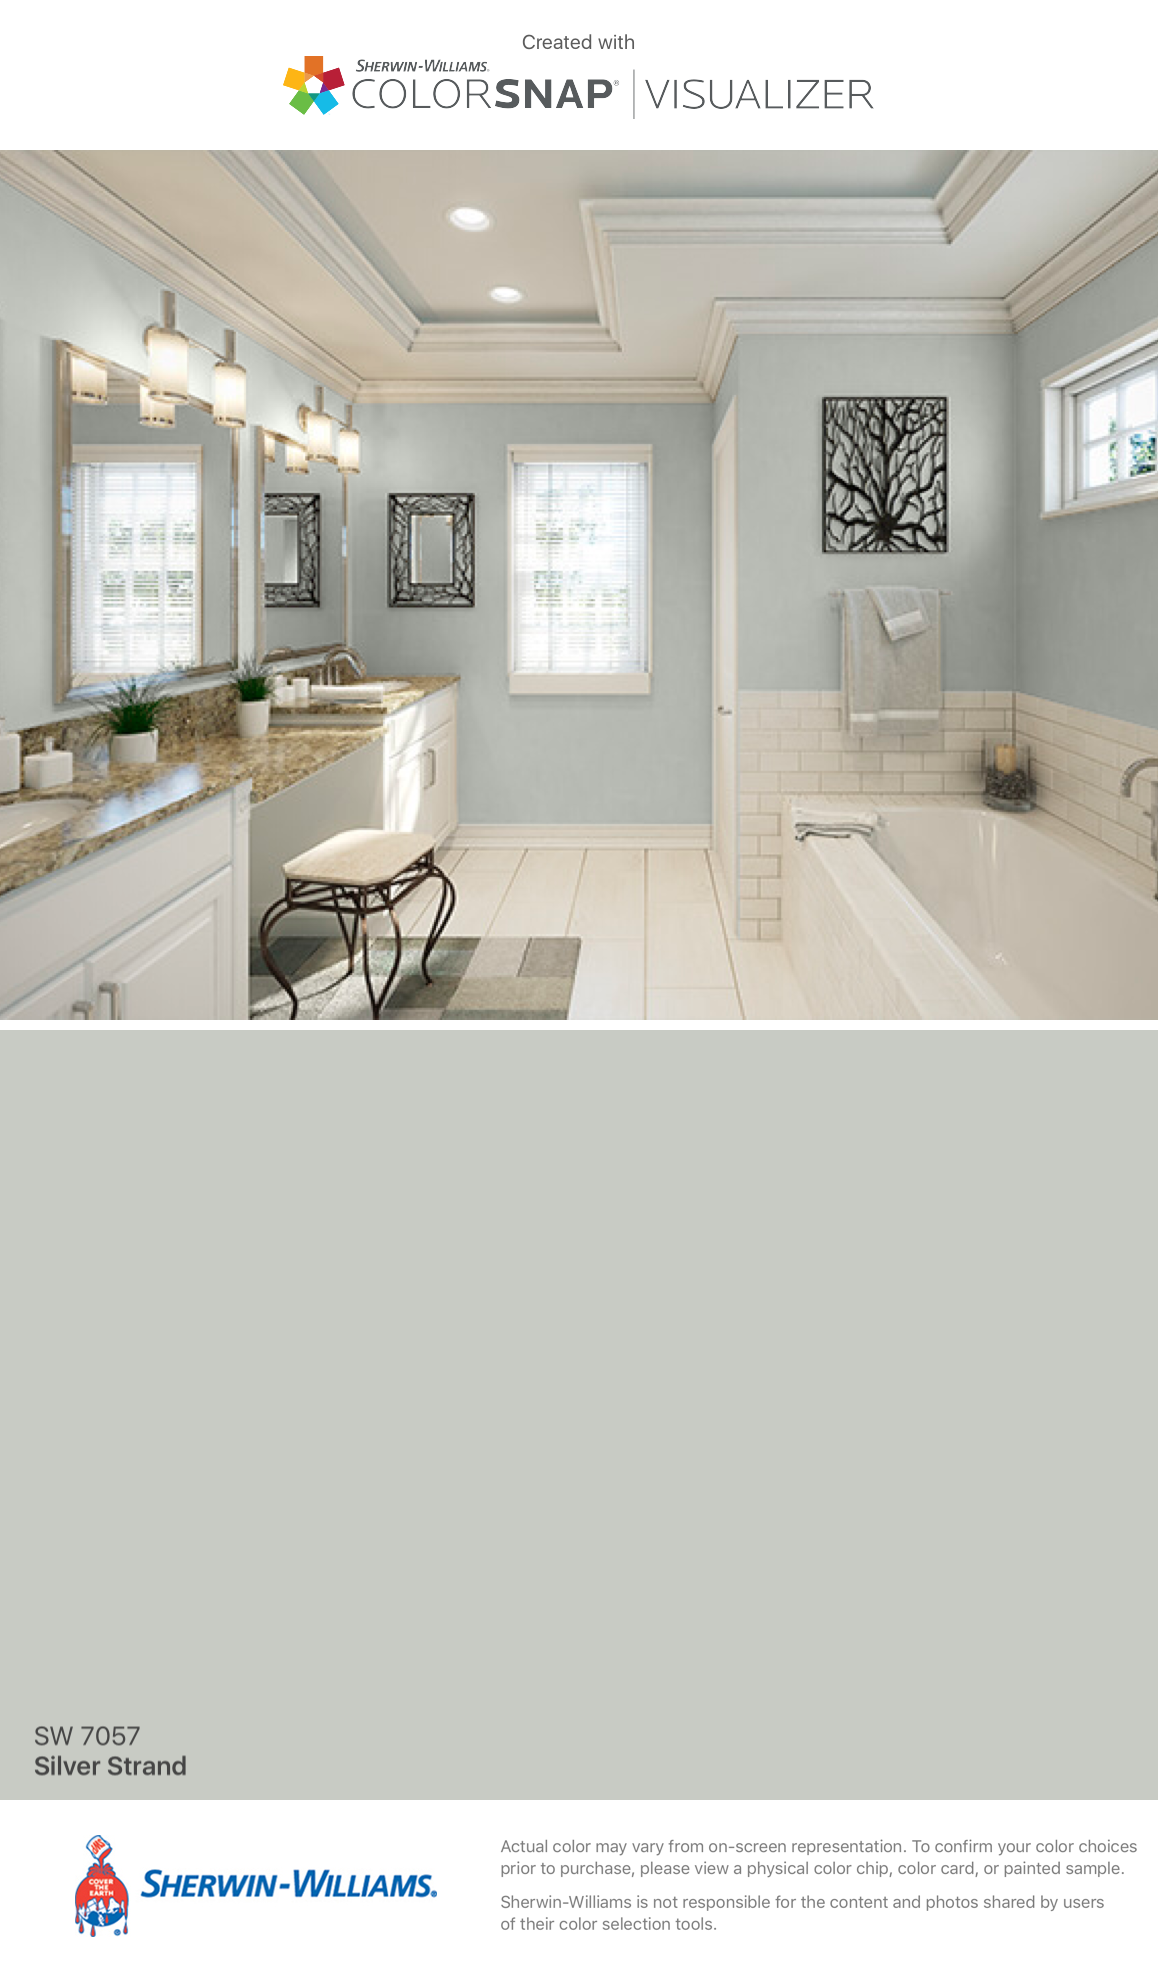 I Found This Color With Colorsnap Visualizer For Iphone By Sherwin Williams Silver Strand Sw 7 Paint Colors For Home Painting Bathroom Matching Paint Colors